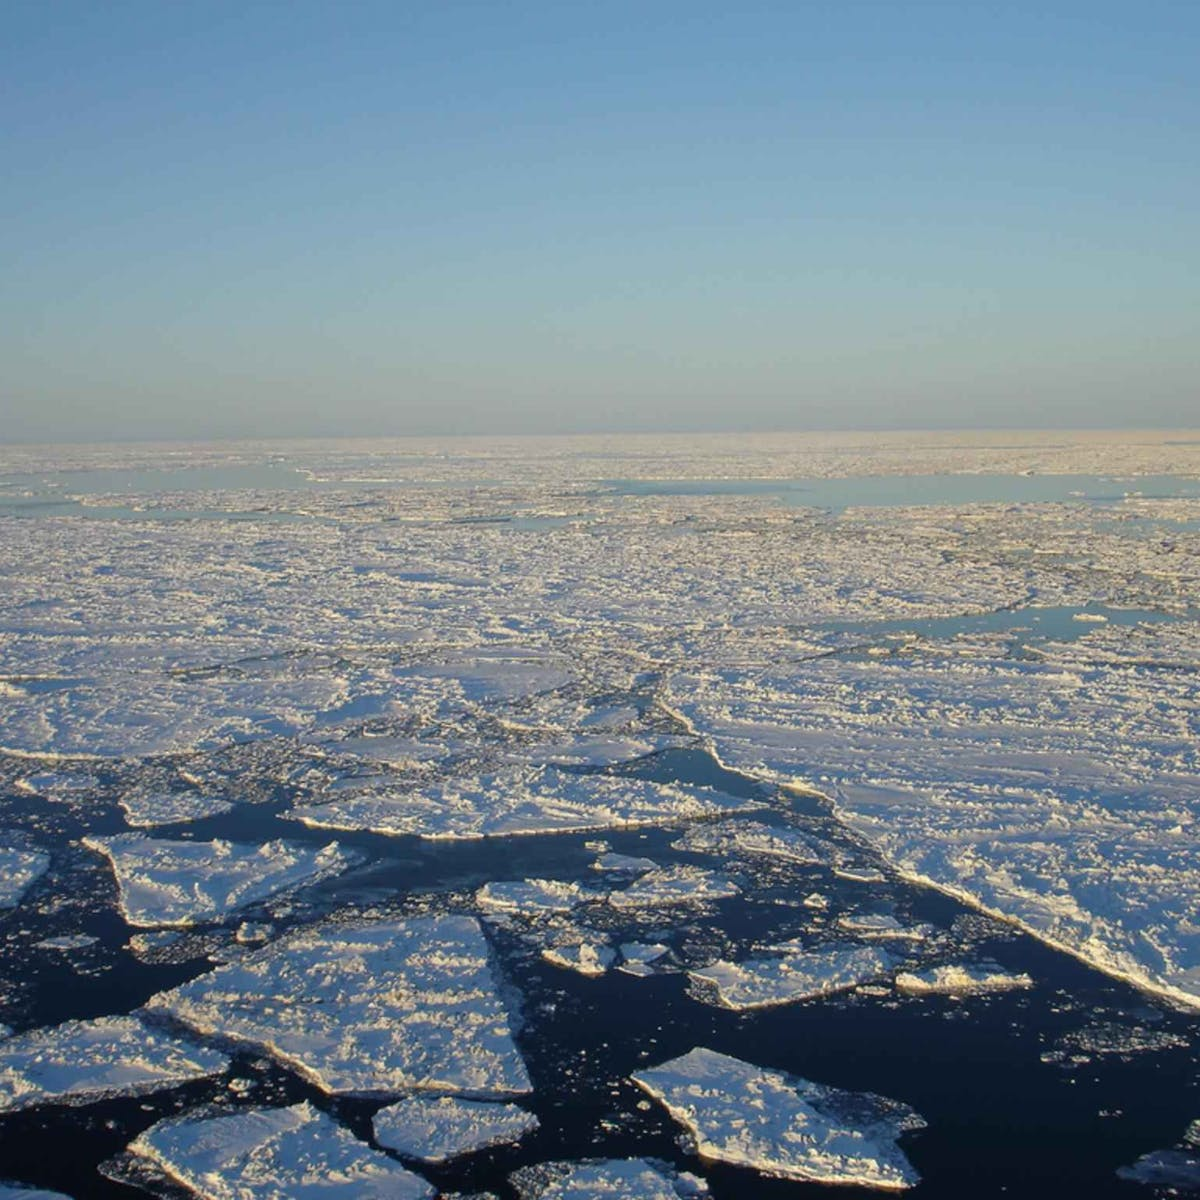 Long-lost landscapes, frozen for 40,000 years, exposed by melting Arctic ice